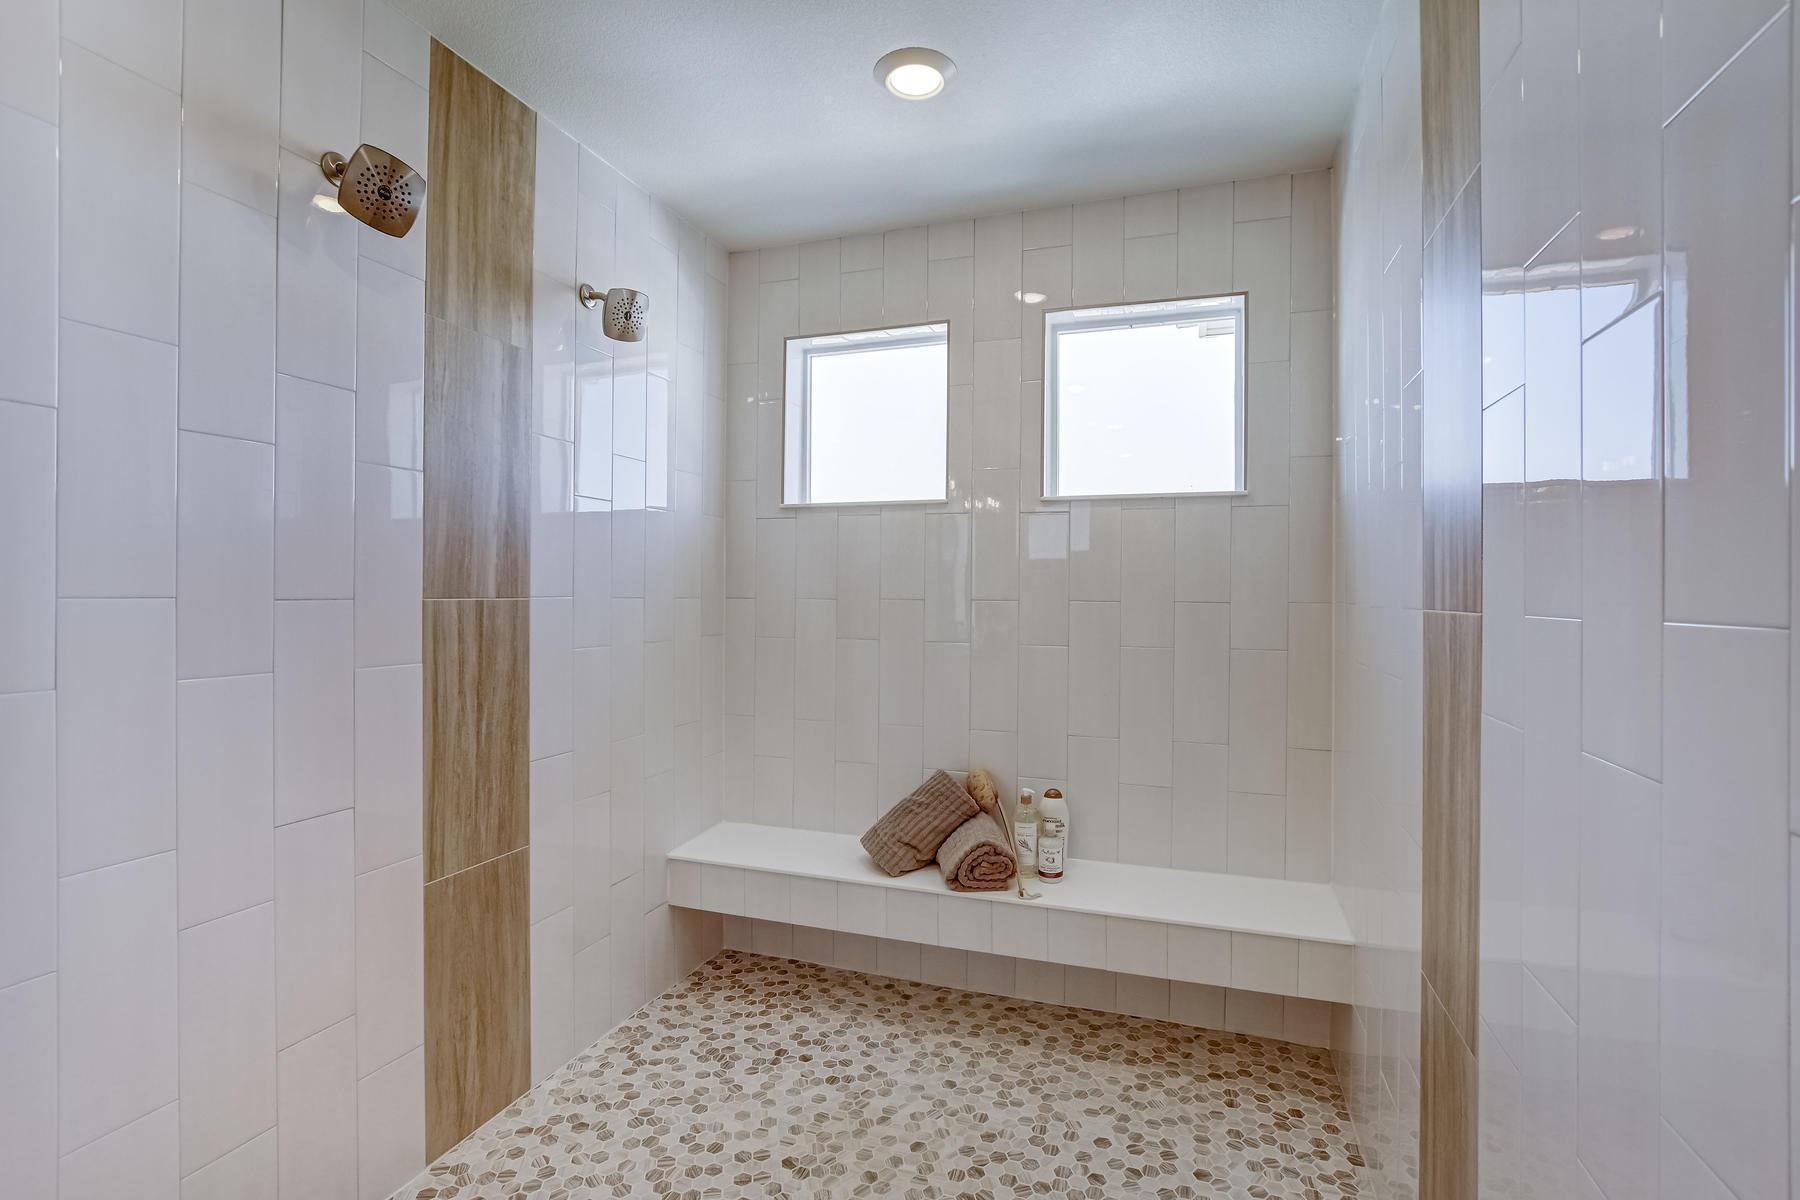 Bathroom featured in the  Branson  By Oakwood Homes in Denver, CO